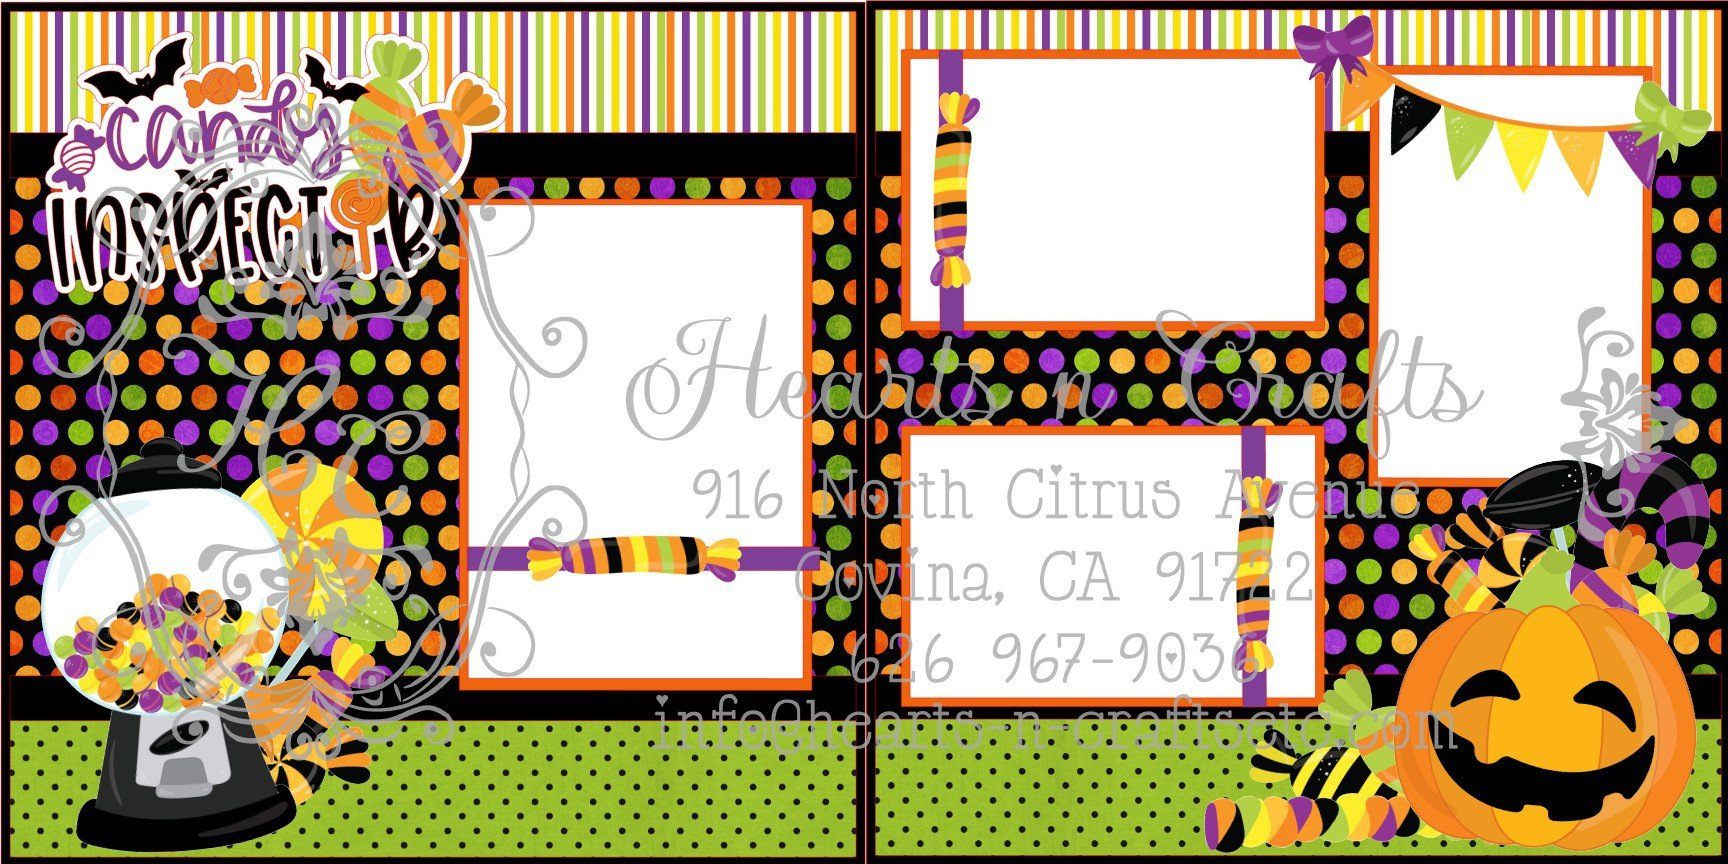 Candy Inspector 2 Page Layout